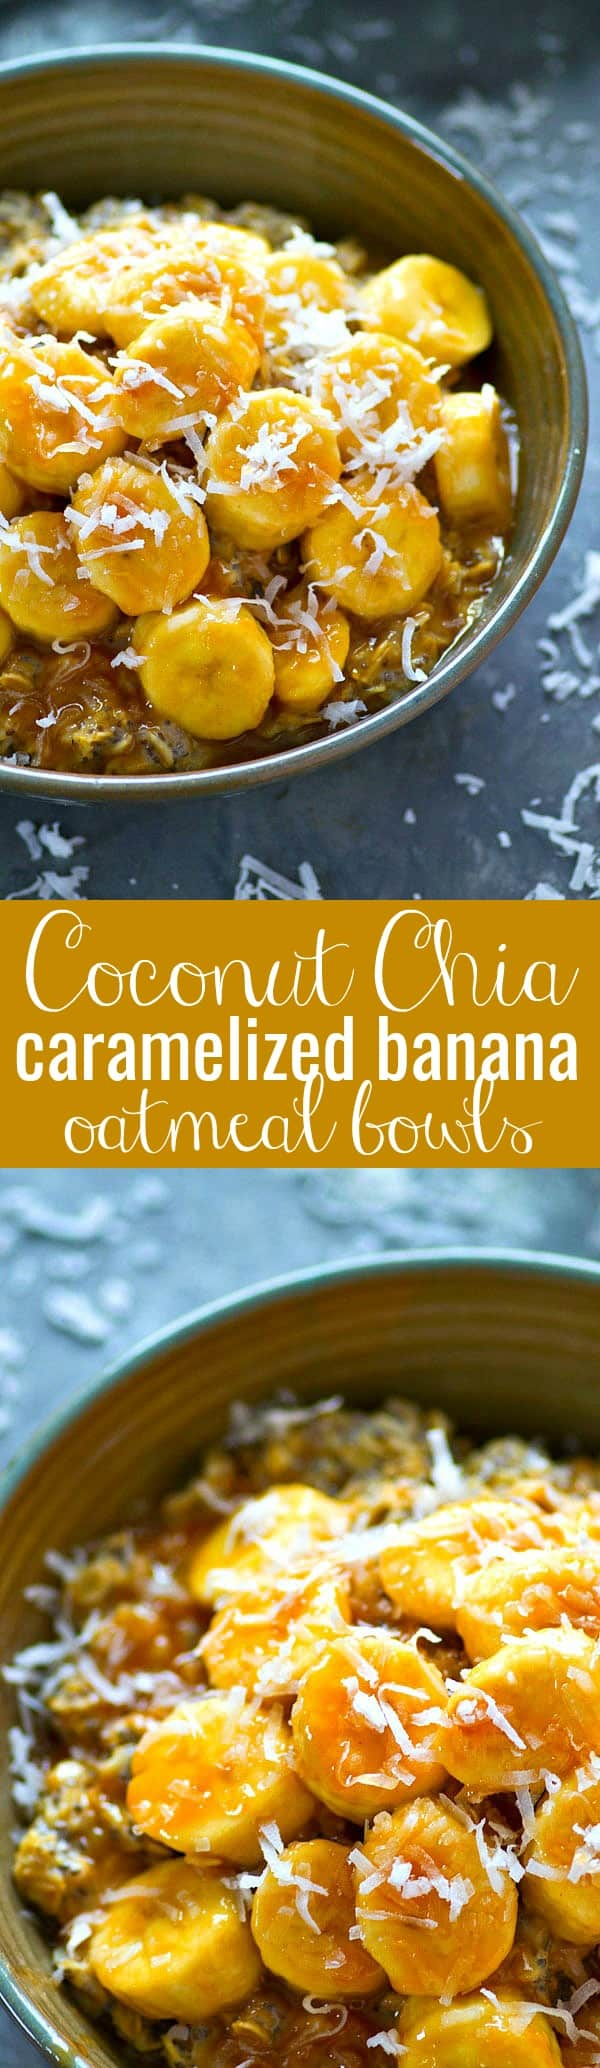 Take your morning oatmeal bowls up a notch! These caramelized banana oatmeal bowls are jam-packed with flaked coconut, chia seeds, and incredibly addicting caramelized bananas!